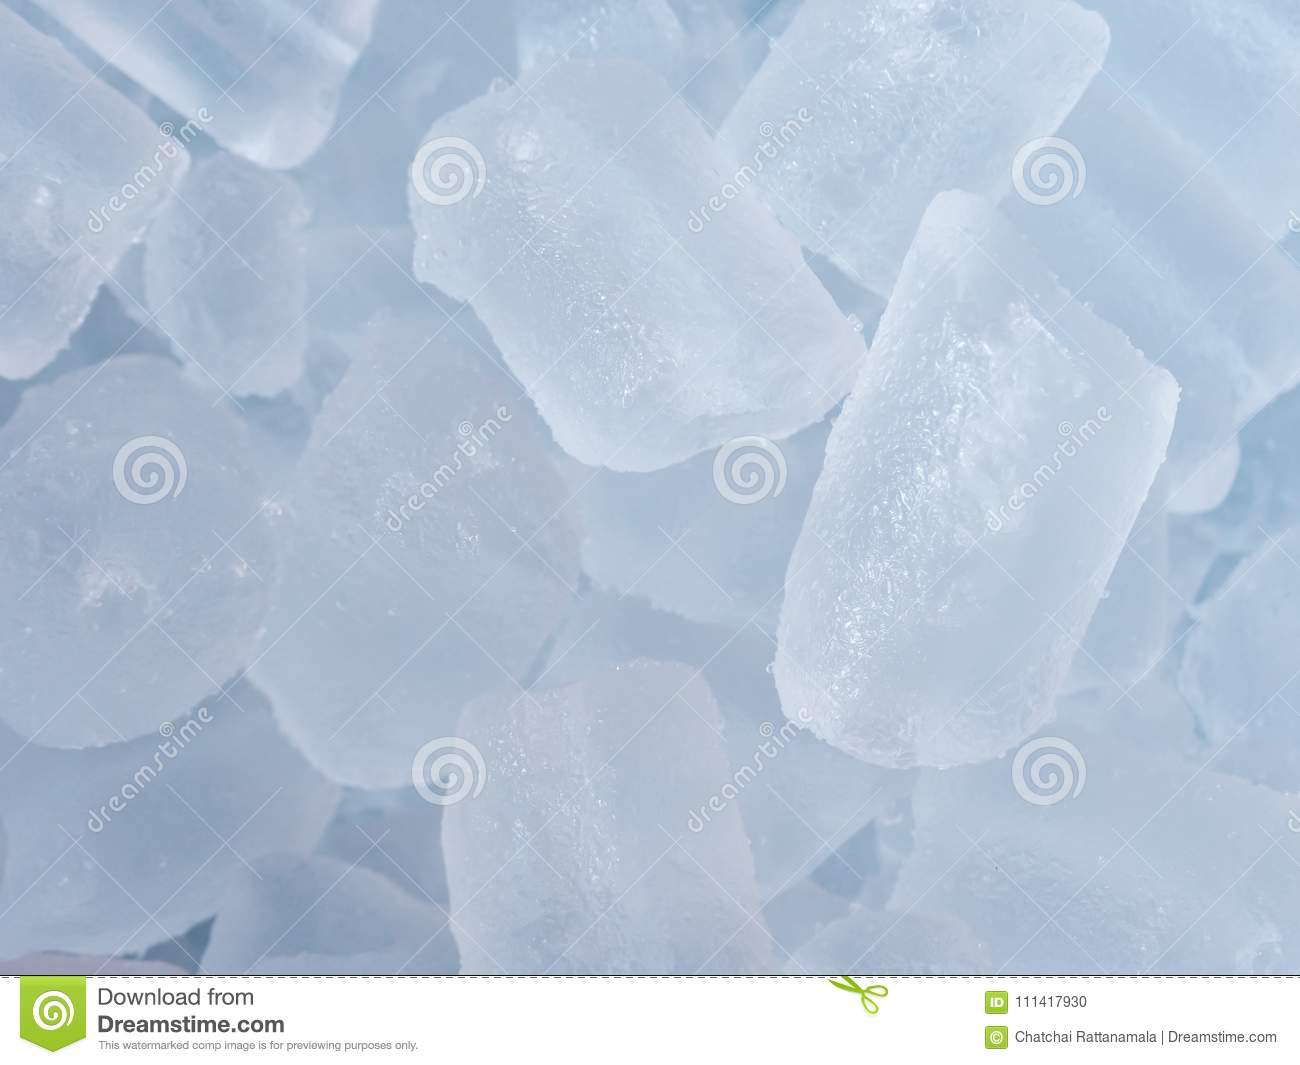 Ice cubes on background